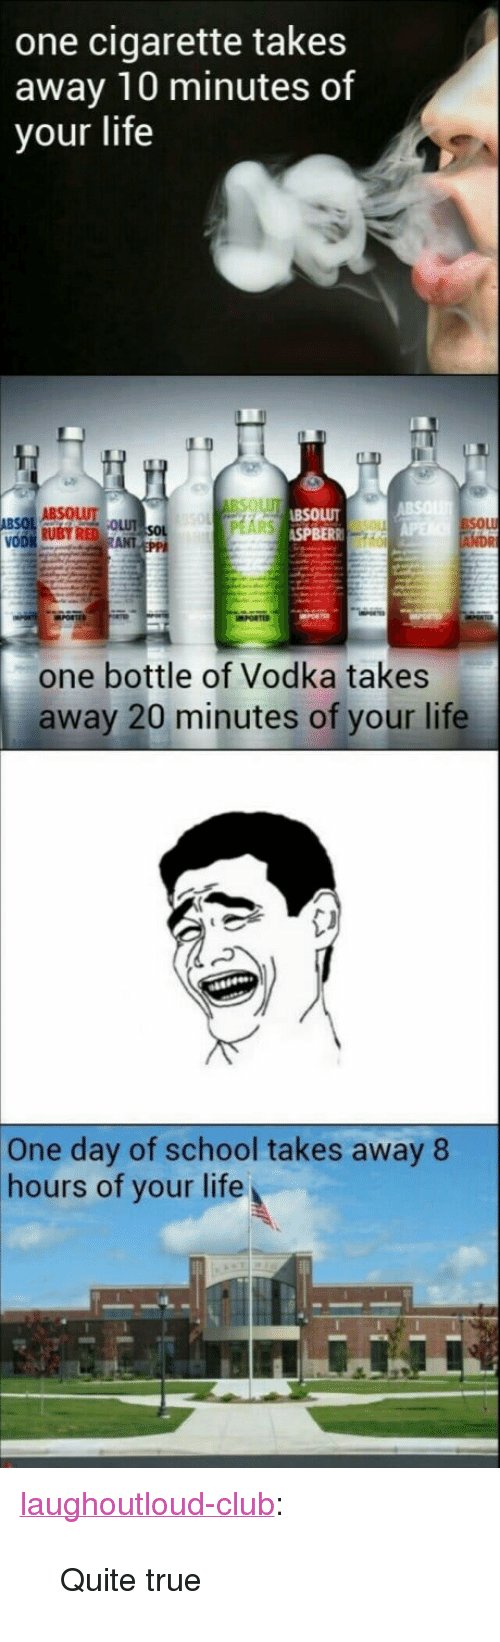 """absolut: one cigarette takes  away 10 minutes of  your life  ABSOLUT  SPBER  SOL  one bottle of Vodka takes  away 20 minutes of your life  One day of school takes away 8  hours of your life <p><a href=""""http://laughoutloud-club.tumblr.com/post/159380773052/quite-true"""" class=""""tumblr_blog"""">laughoutloud-club</a>:</p>  <blockquote><p>Quite true</p></blockquote>"""